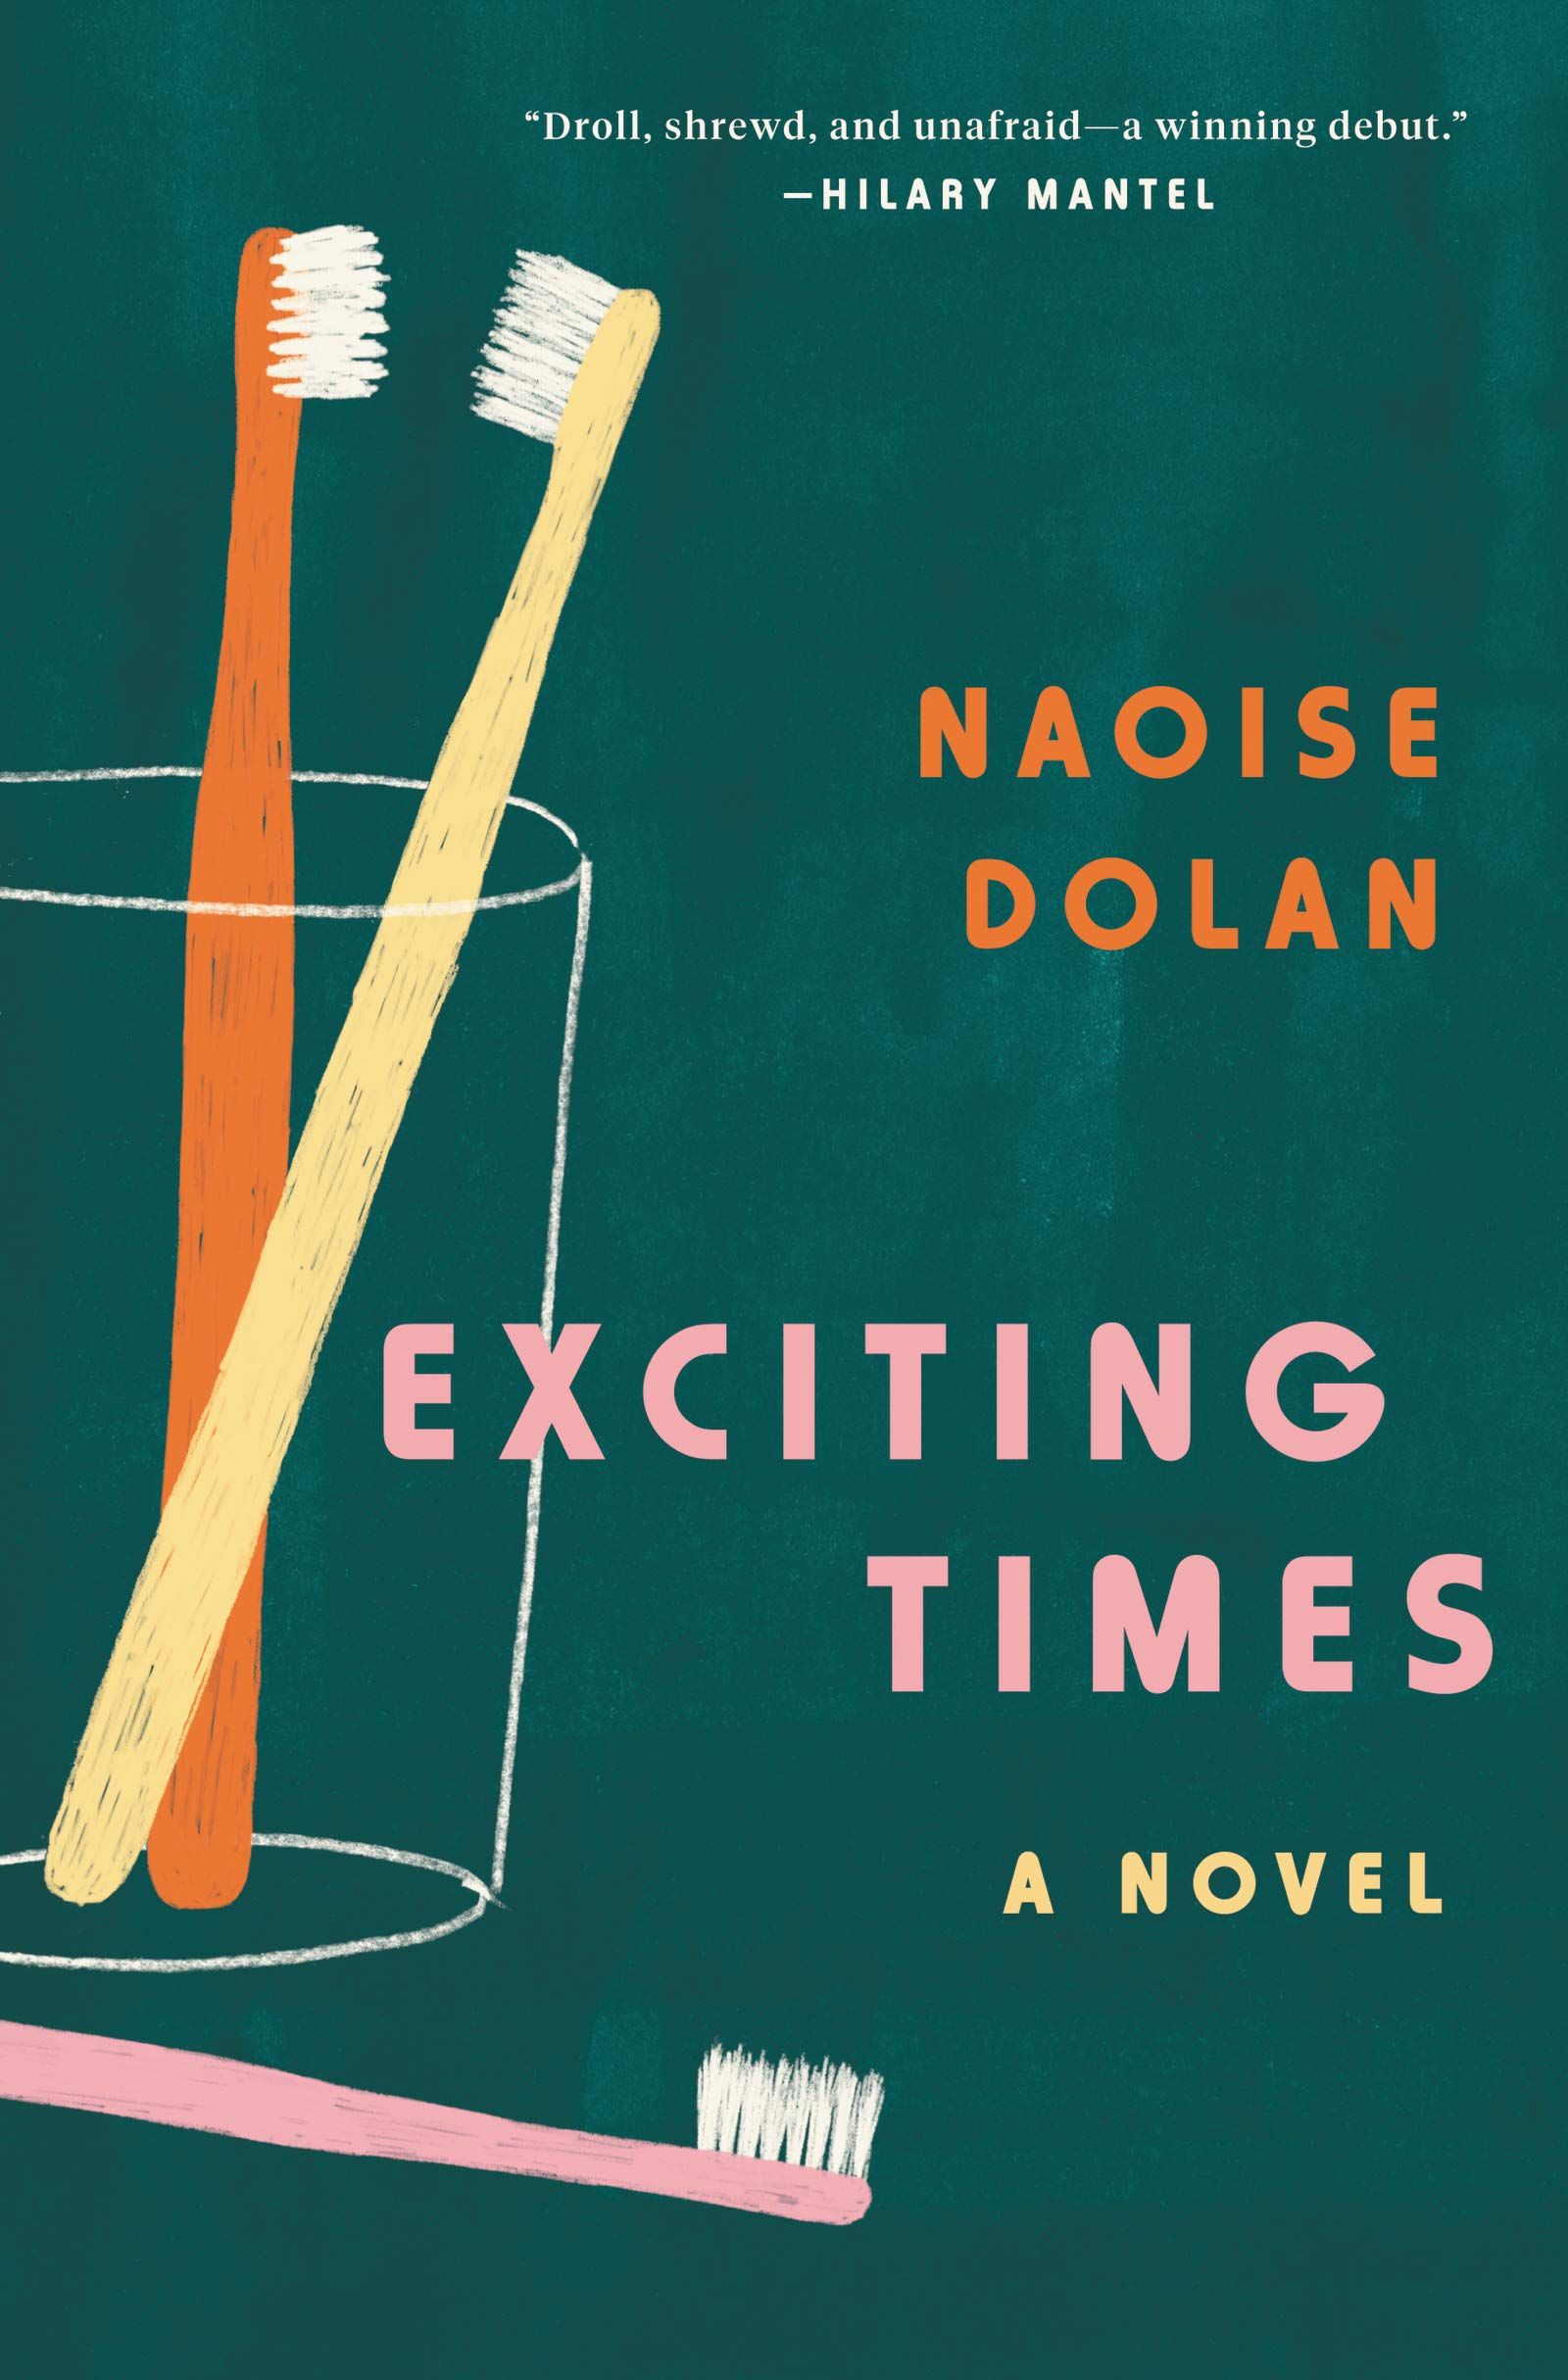 6. Exciting Times by Naoise Dolan